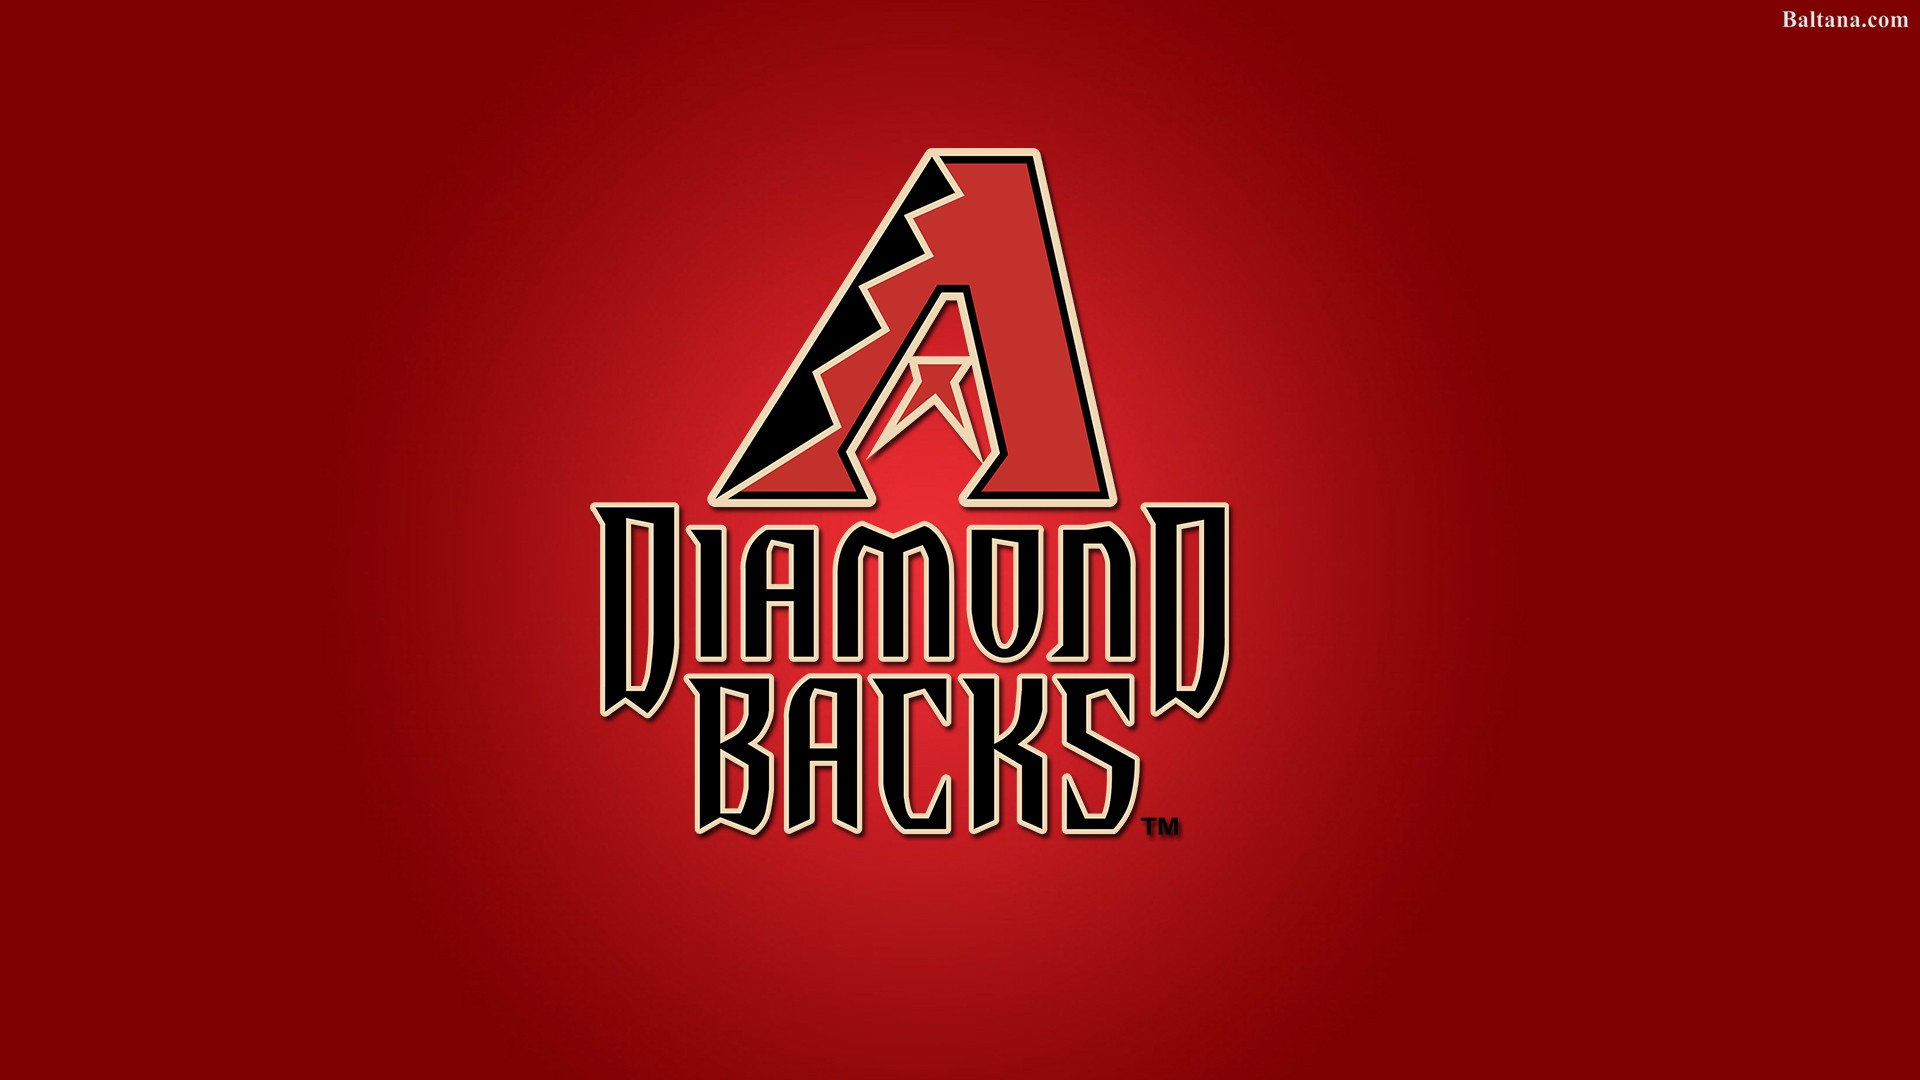 1920x1080 - Arizona Diamondbacks Wallpapers 20